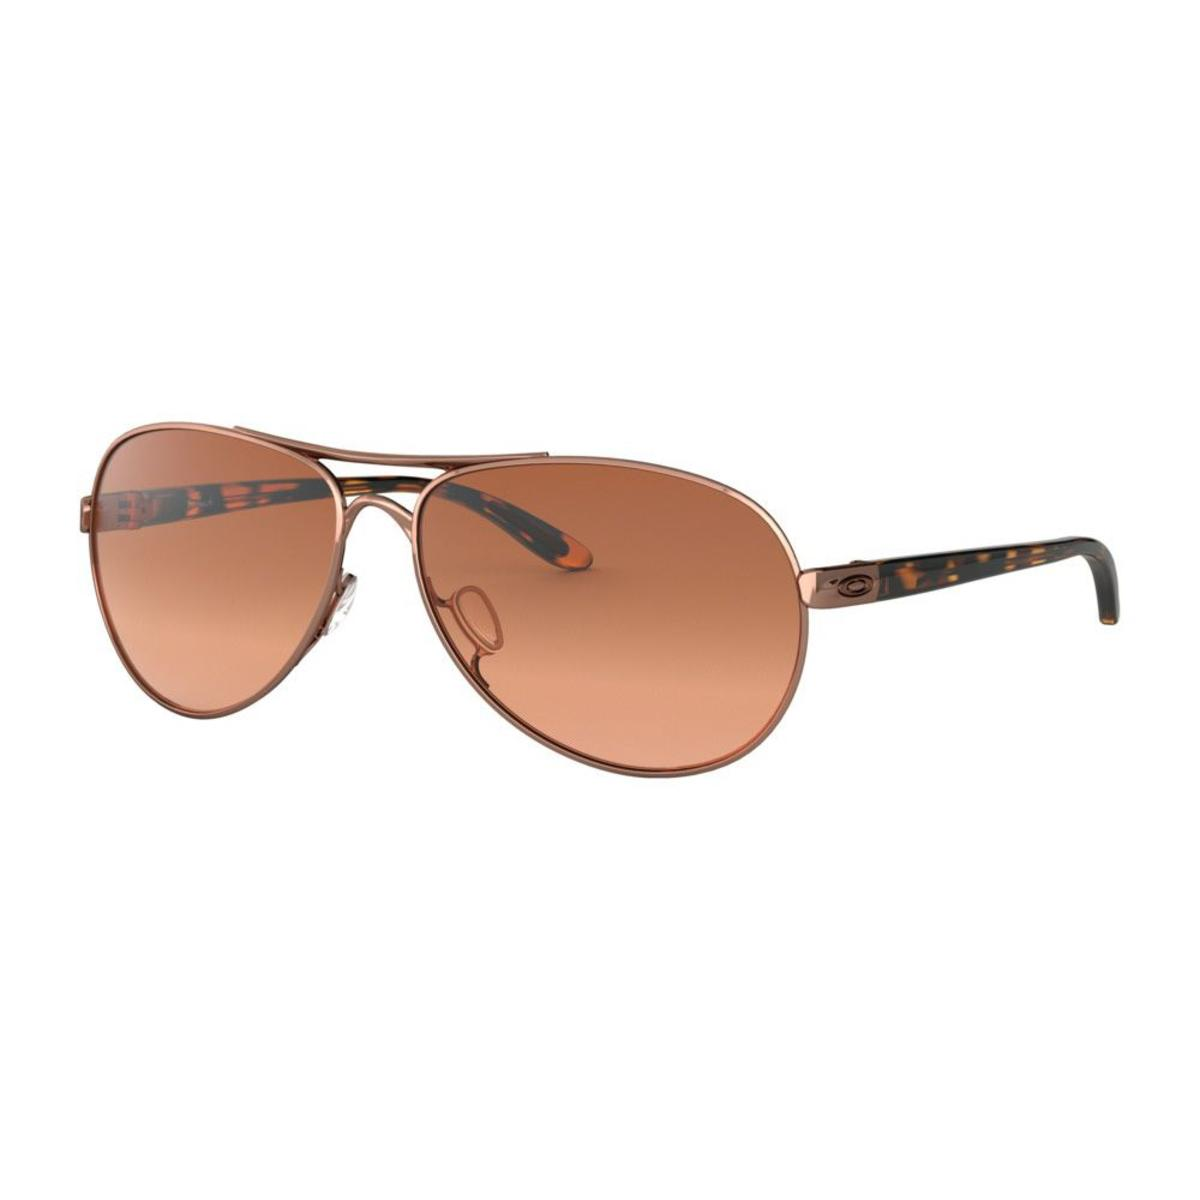 Oakley Feedback Rose Gold Sunglasses W Vr50 Brown Gradient The Warming Store